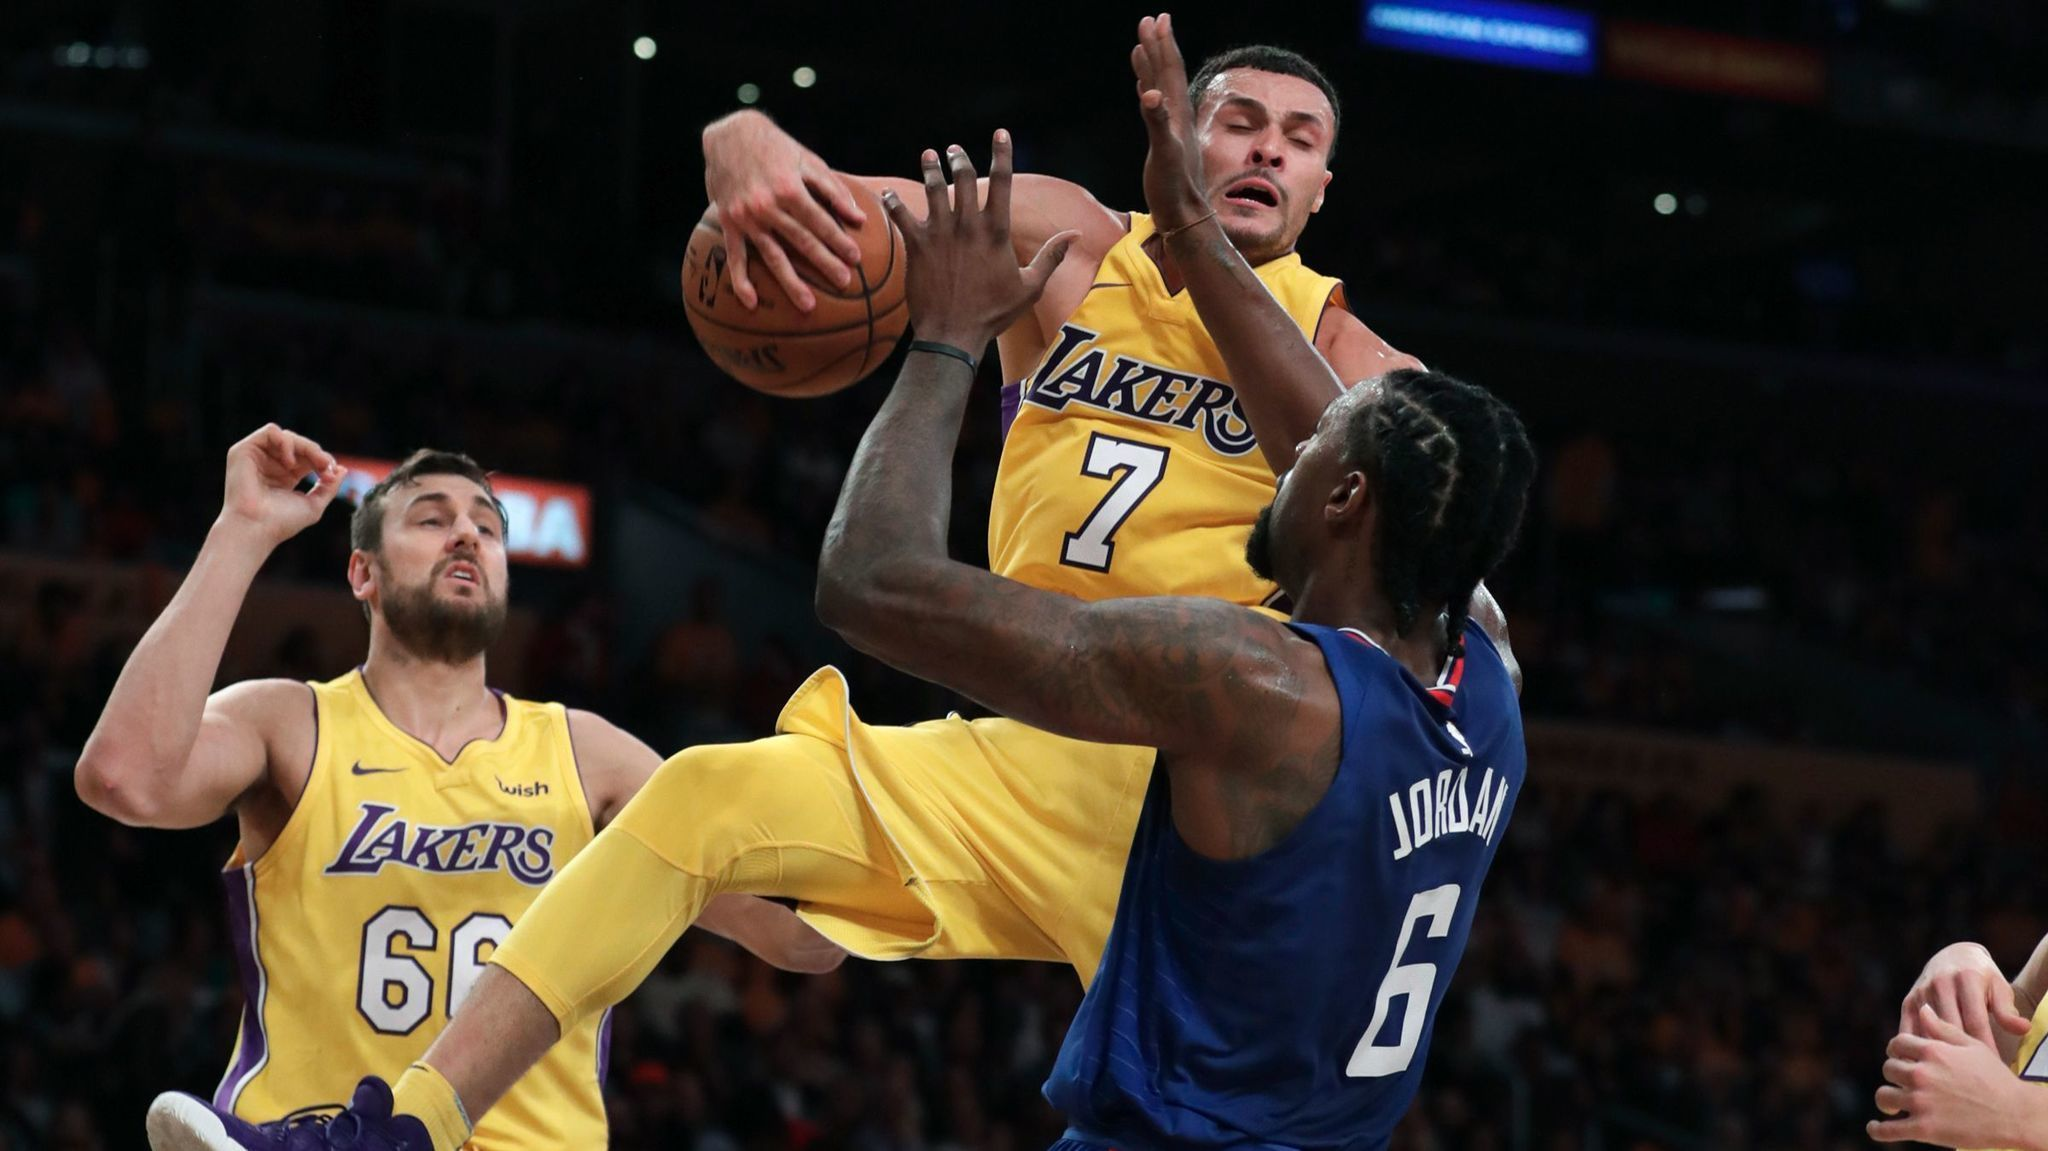 La-sp-lakers-clippers-takeaways-20171020